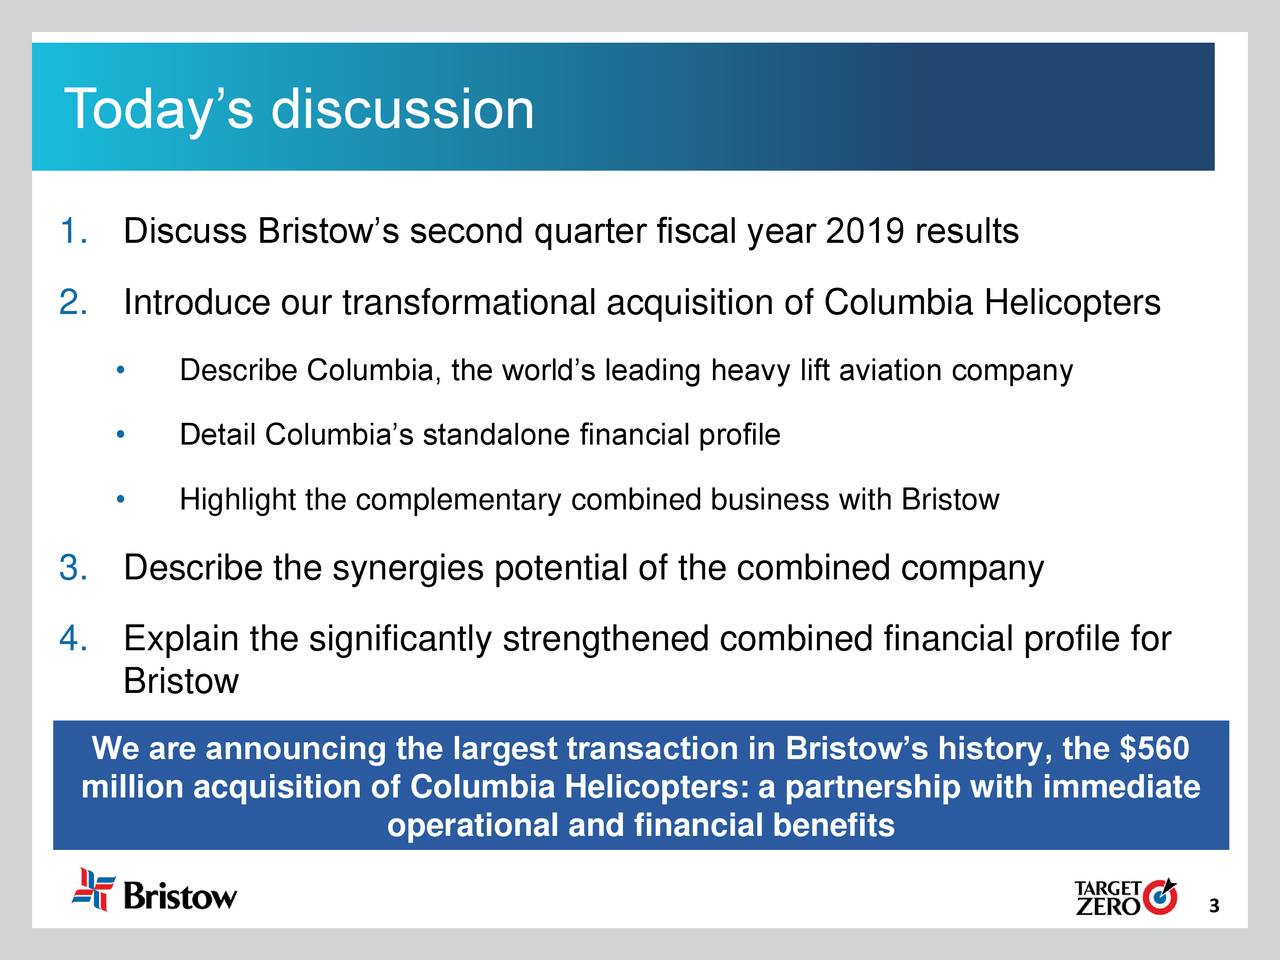 90 160 Fill T oday's discussion 212 0 0 1. Discuss Bristow's second quarter fiscal year 2019 results Fill 2. Introduce our transformational acquisition of Columbia Helicopters 152 150 • Describe Columbia, the world's leading heavy lift aviation company 151 Fill • Detail Columbia's standalone financial profile • Highlight the complementary combined business with Bristow 187 219 3. Describe the synergies potential of the combined company Fill 4. Explain the significantly strengthened combined financial profile for Bristow 915 91 Fill We are announcing the largest transaction in Bristow's history, the $560 million acquisition of Columbia Helicopters: a partnership with immediate operational and financial benefits 189 188 Fill